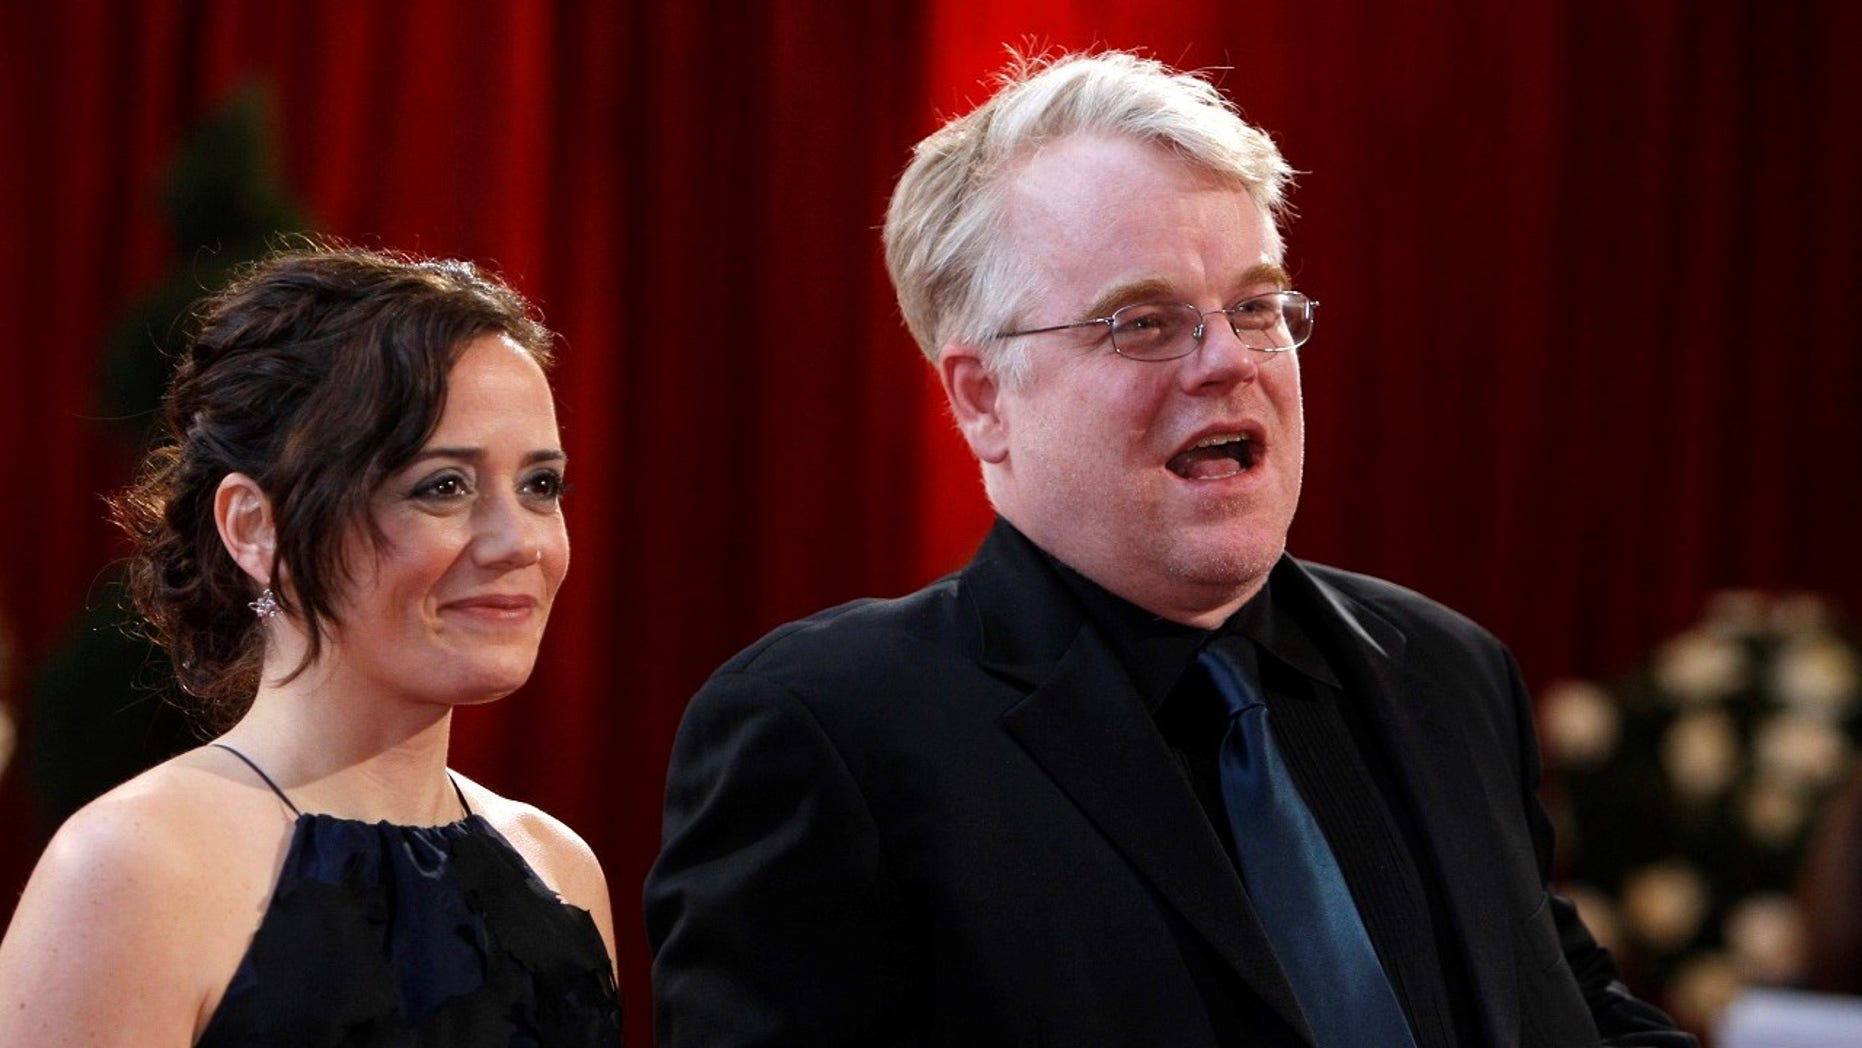 Philip Seymour Hoffman and Mimi O'Donnell dated for 15 years before the late actor's death in February 2014.